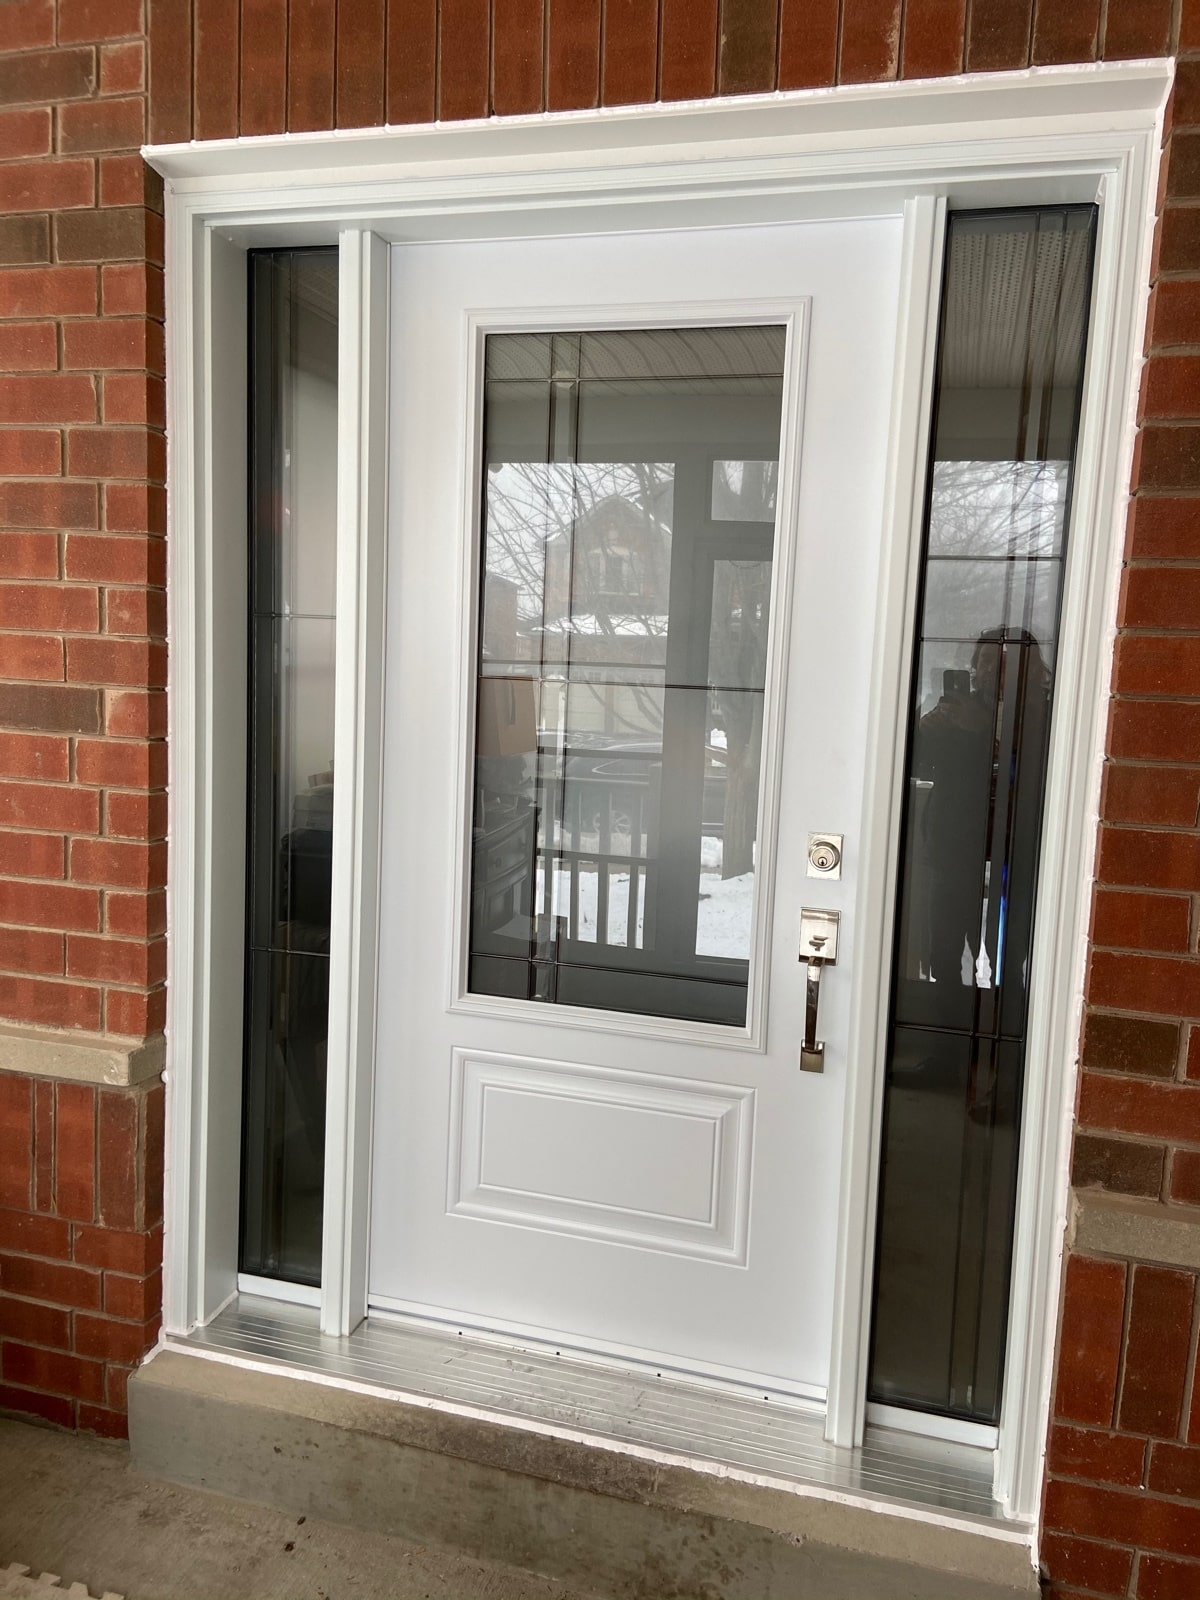 External door replacement in Newmarket